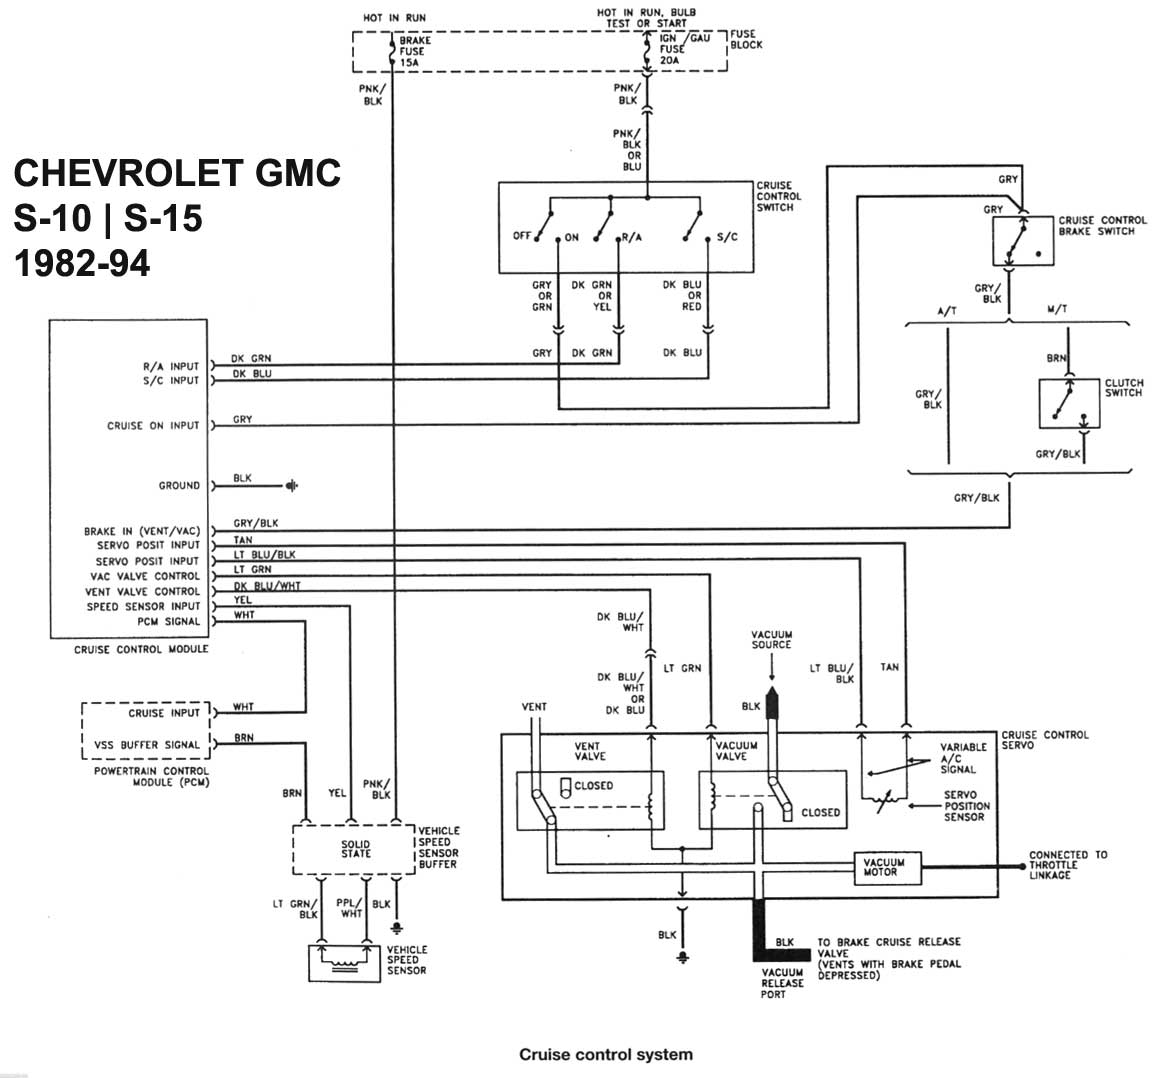 1989 chevy s10 wiring diagram 1989 jeep wrangler wiring diagram